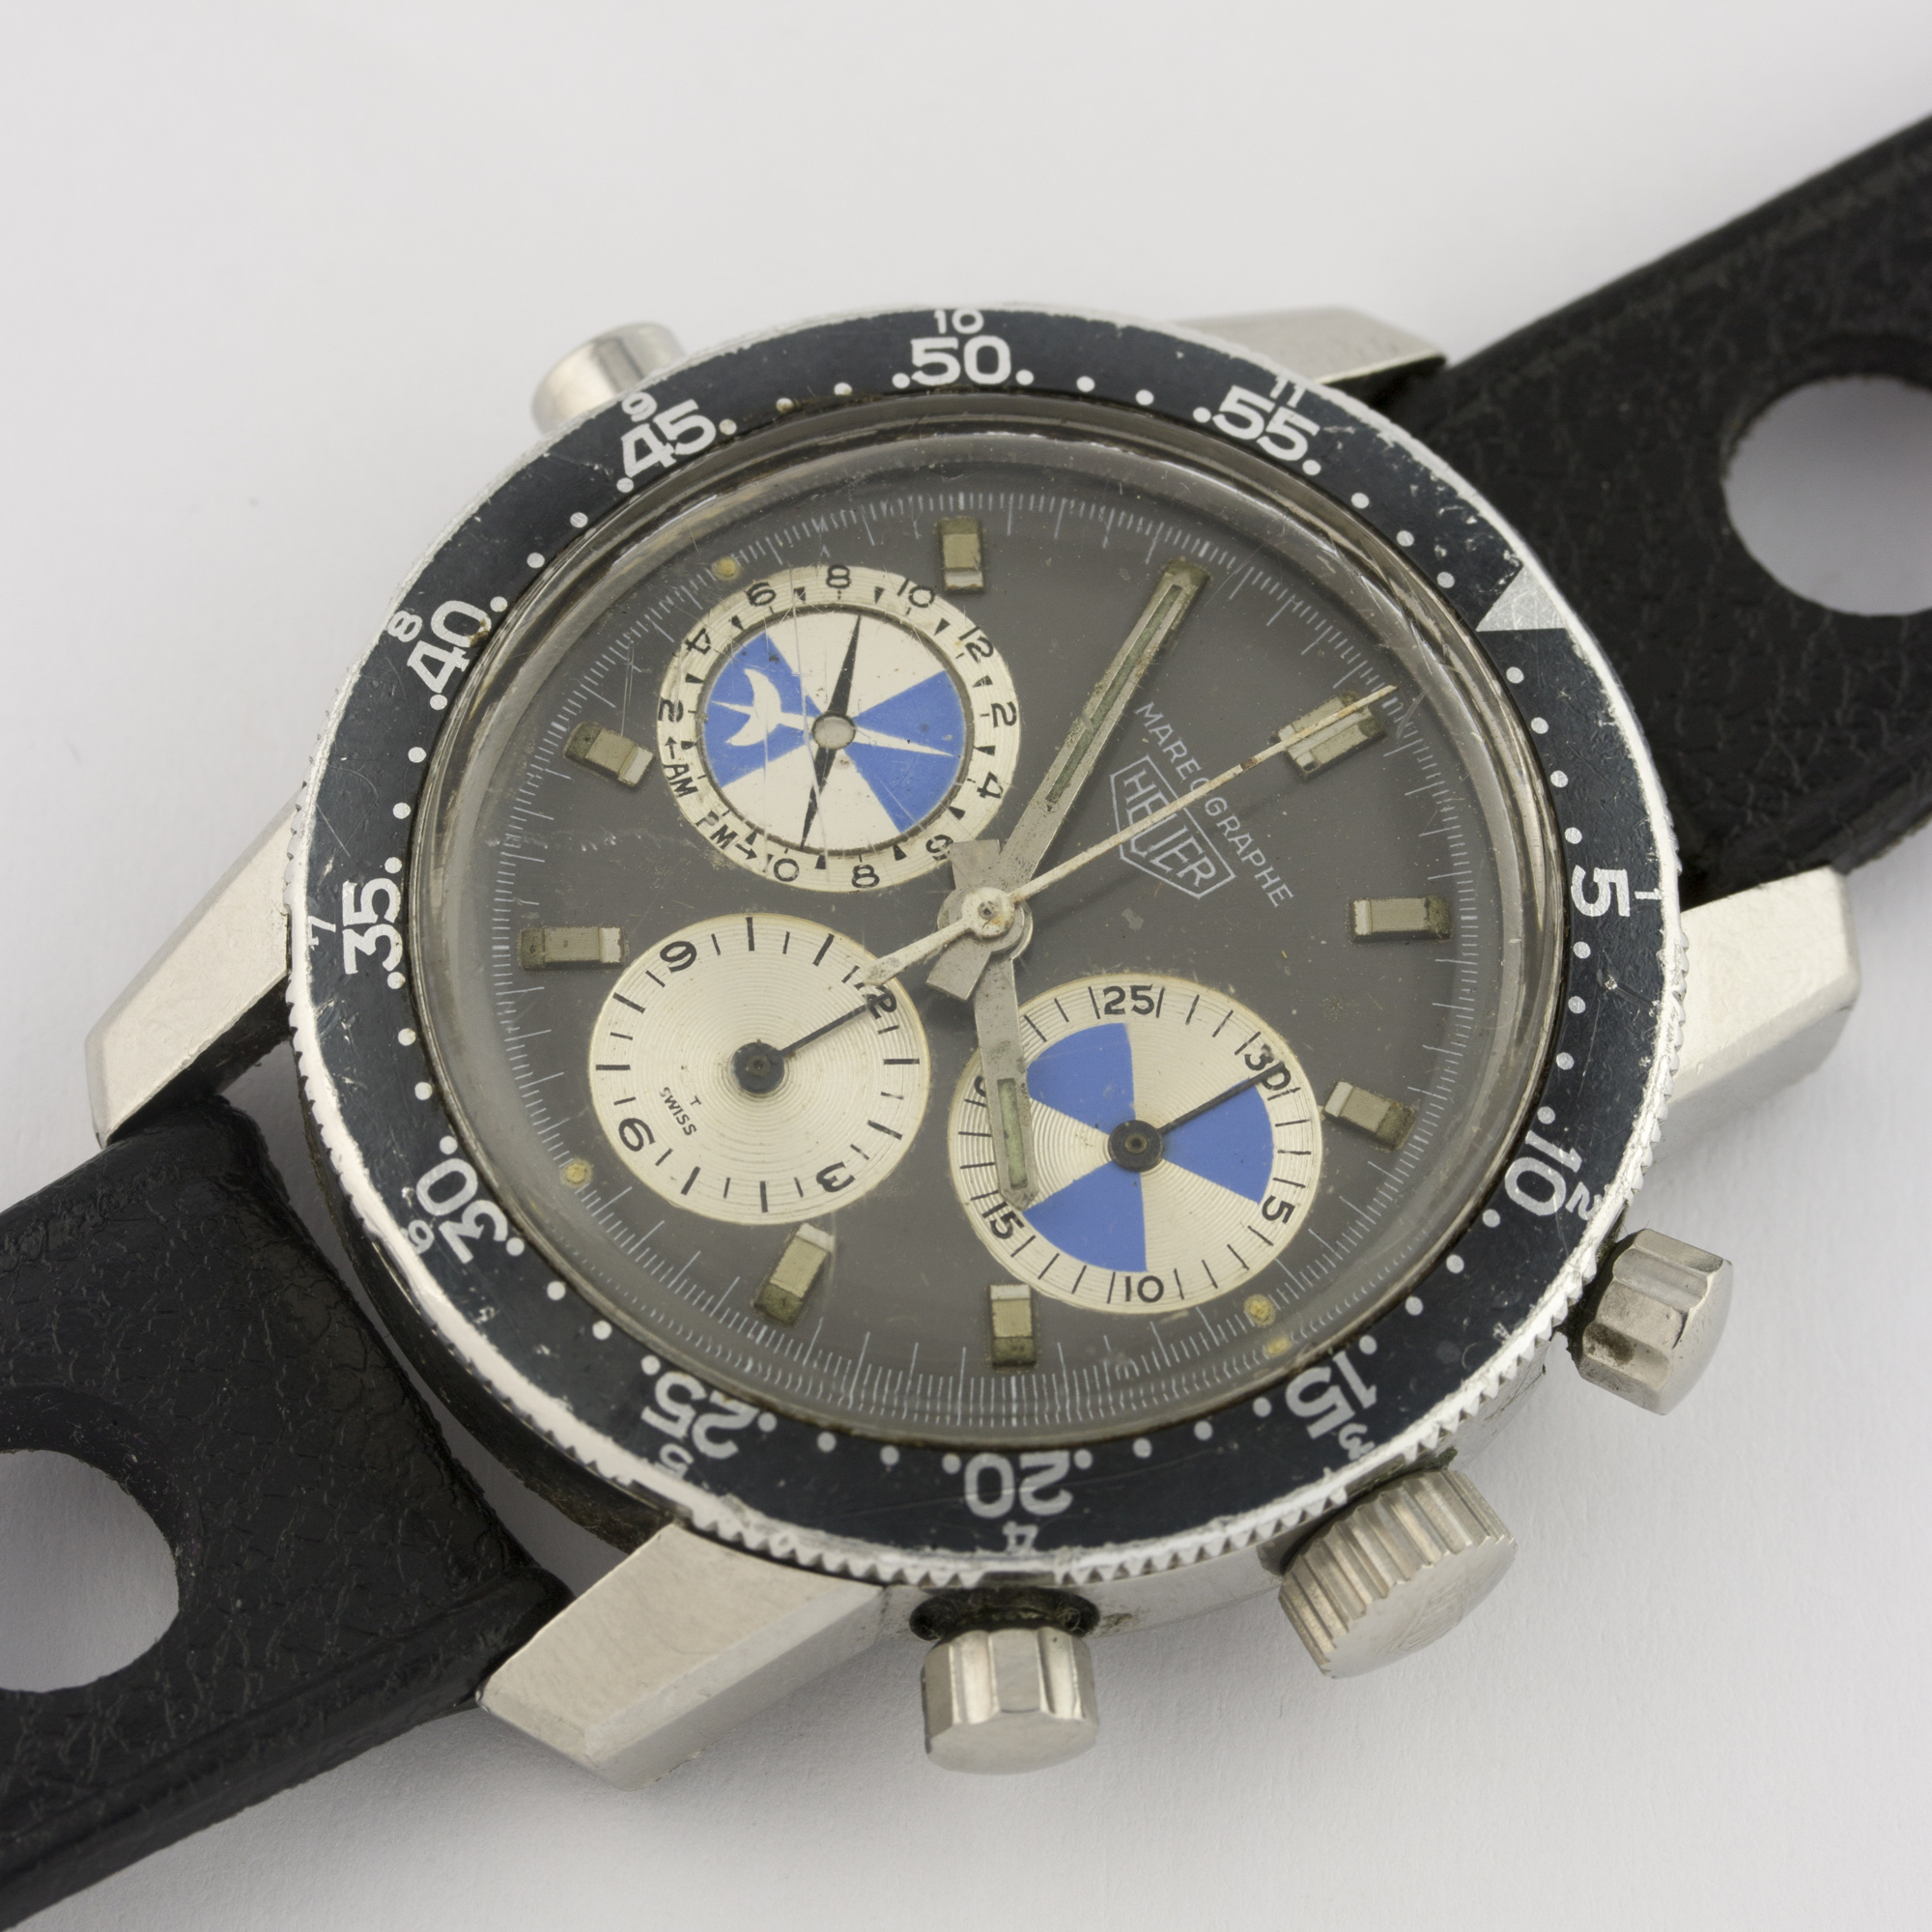 Lot 146 - AN EXTREMELY RARE GENTLEMAN'S STAINLESS STEEL HEUER MAREOGRAPHE TIDAL CHRONOGRAPH WRIST WATCH